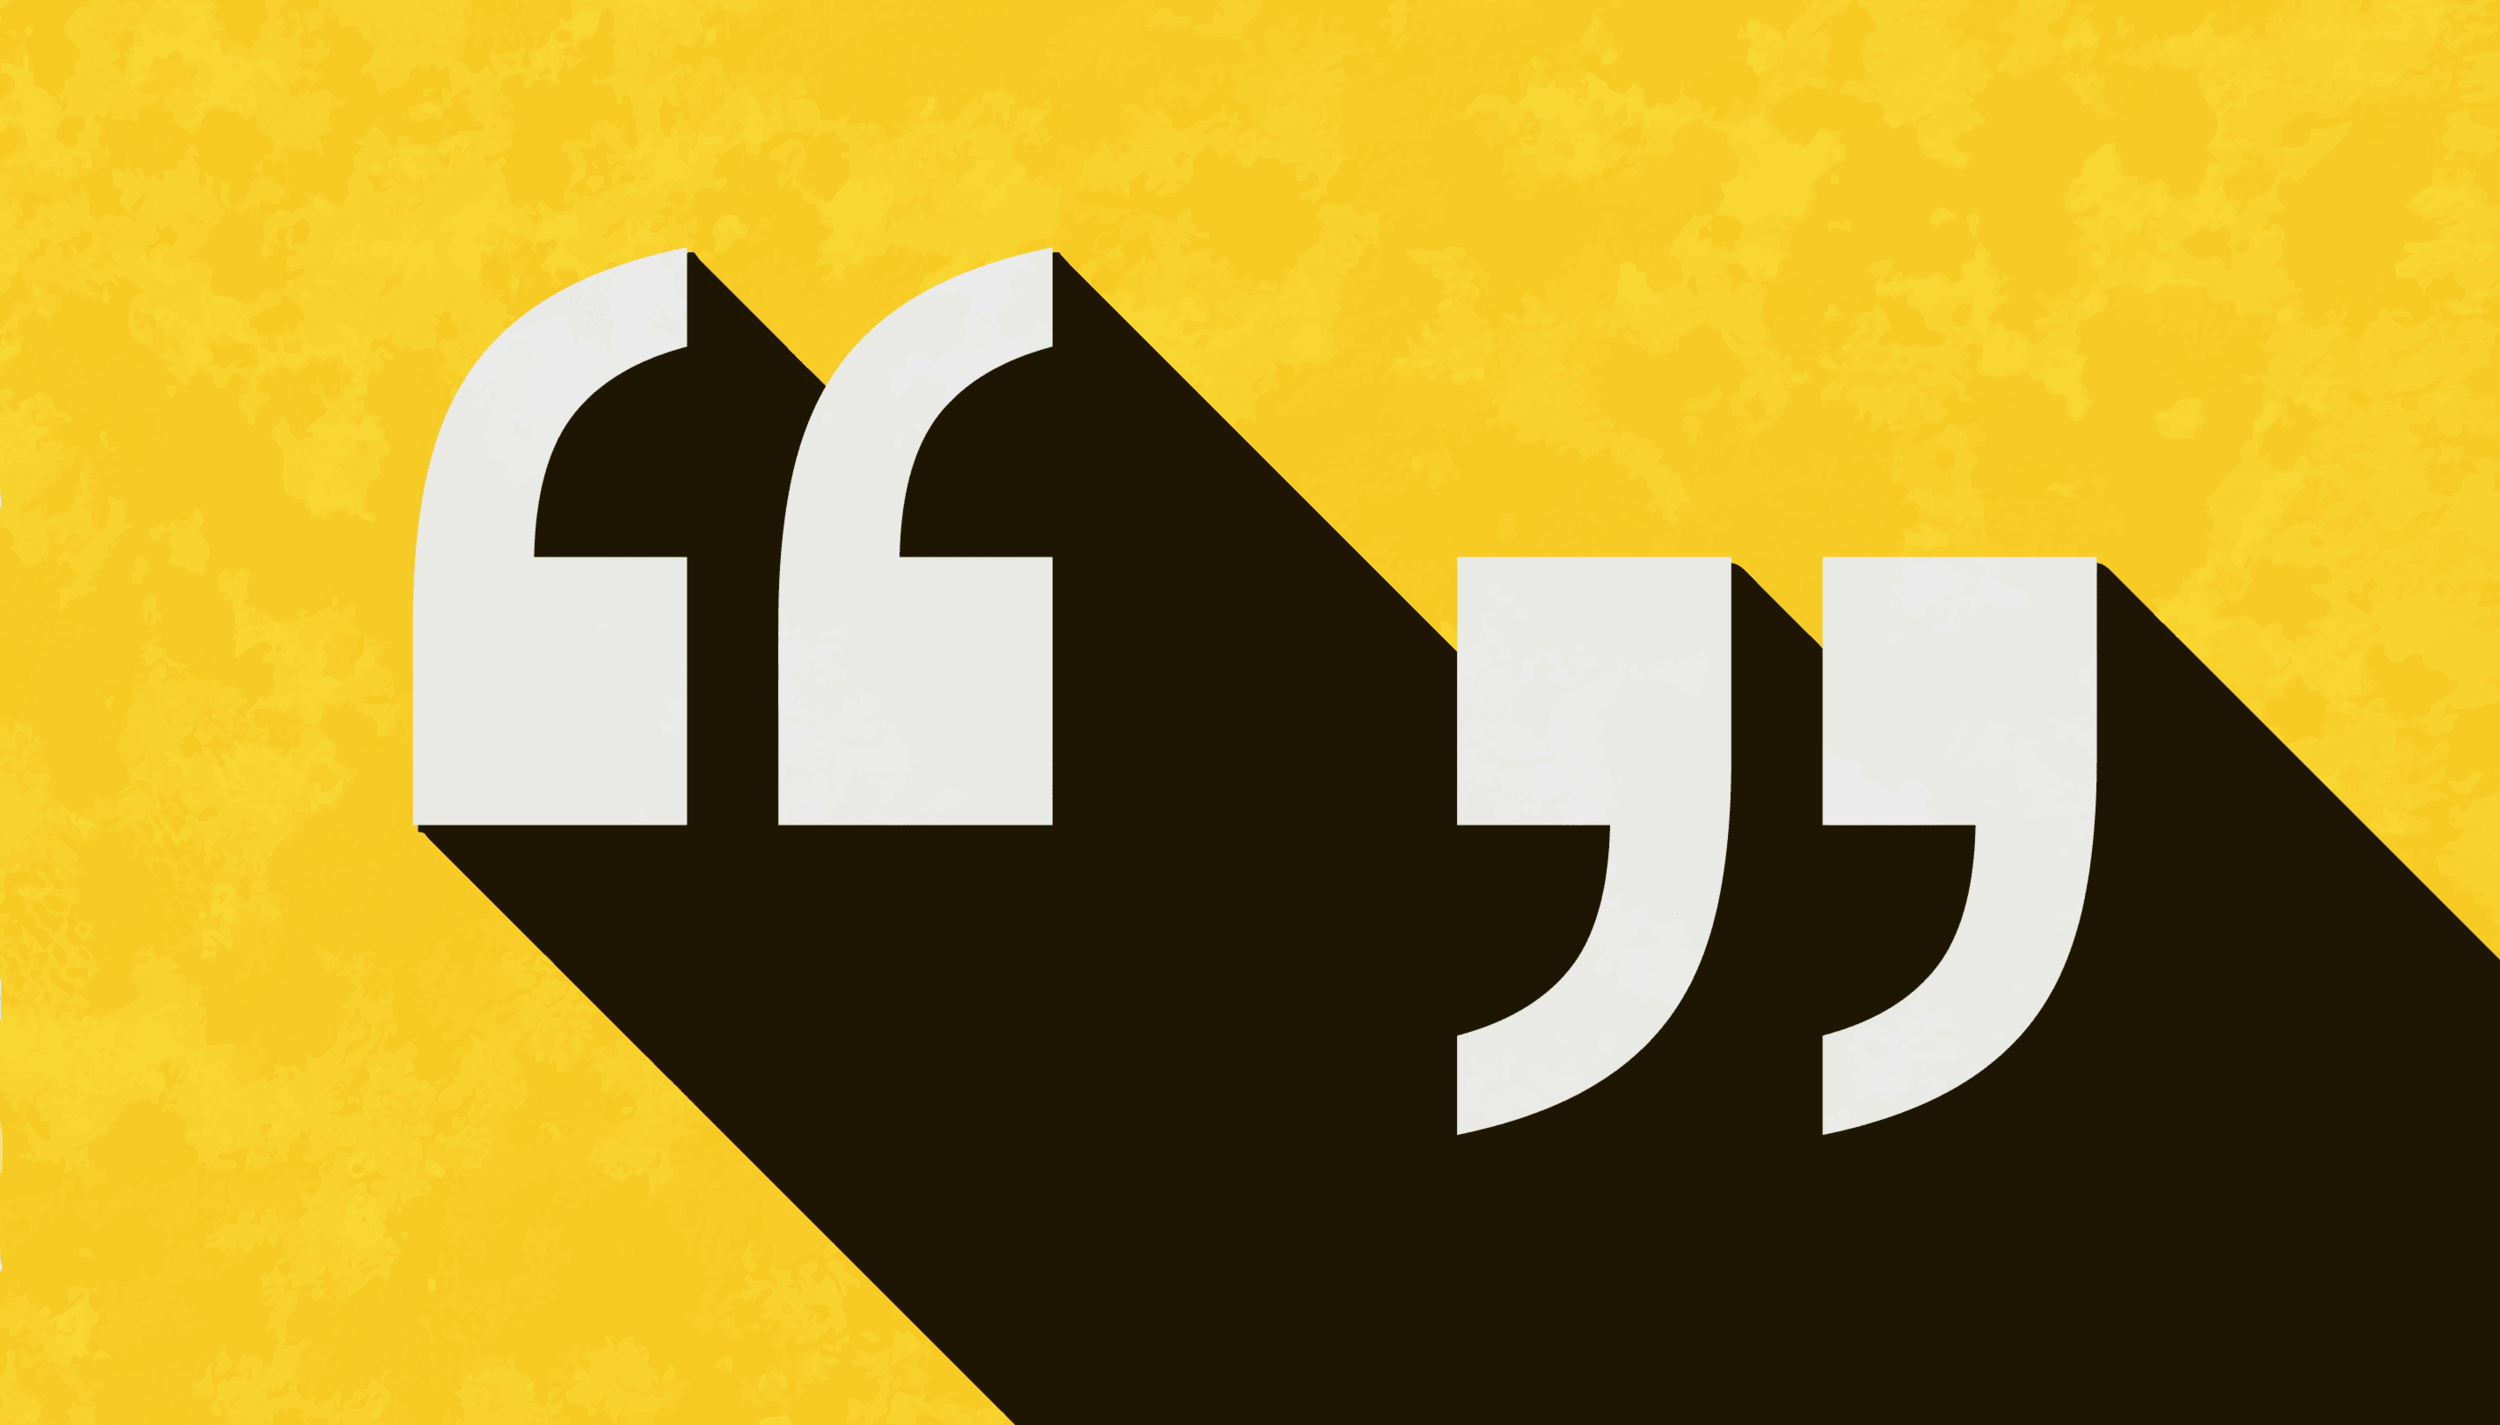 quotation marks in black and white on a yellow background with an artistic flair